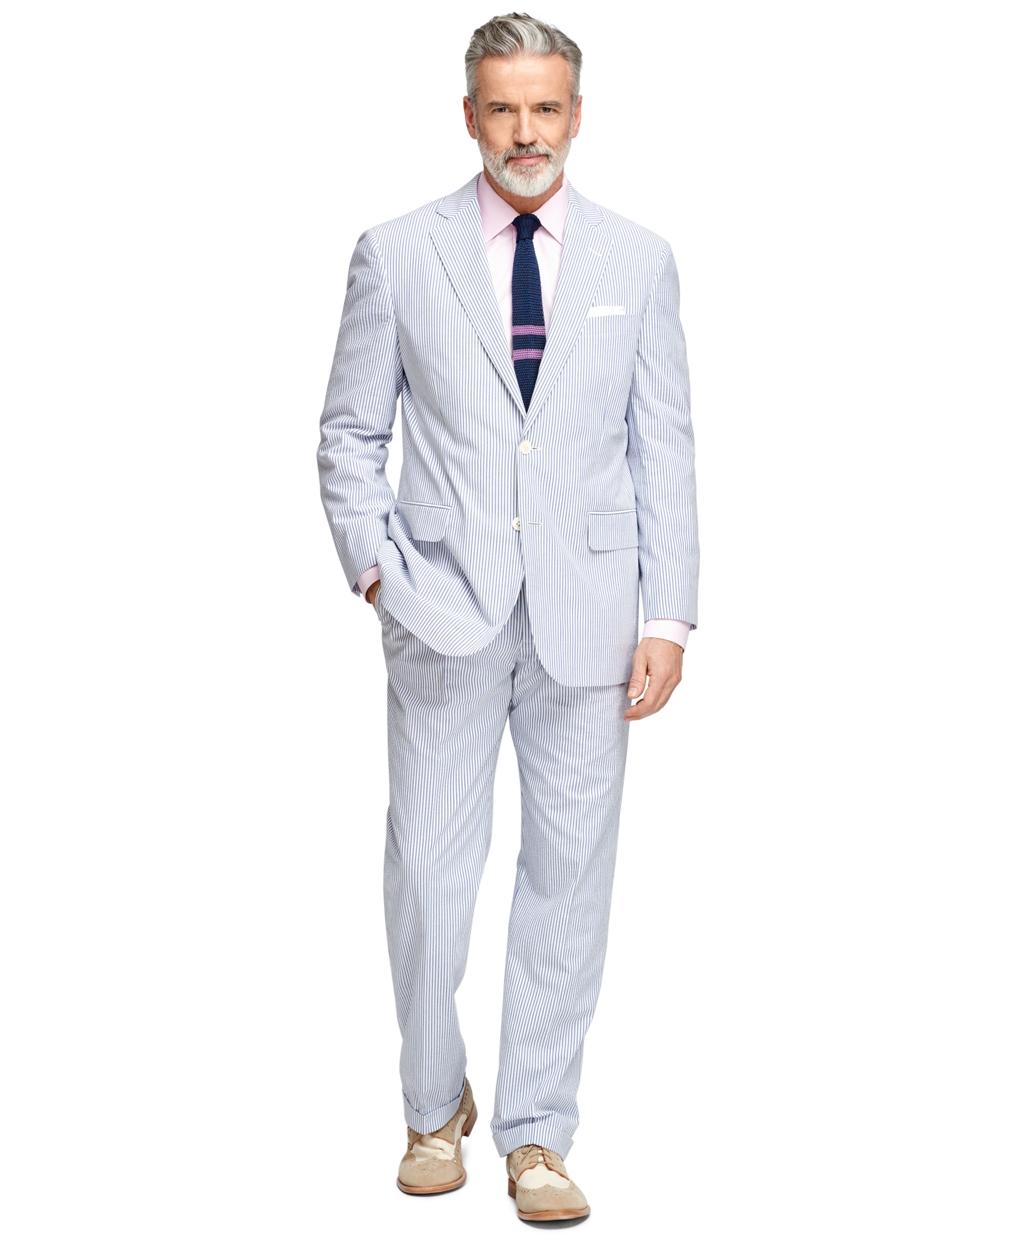 Lyst - Brooks Brothers Madison Fit Seersucker Suit in Blue ...